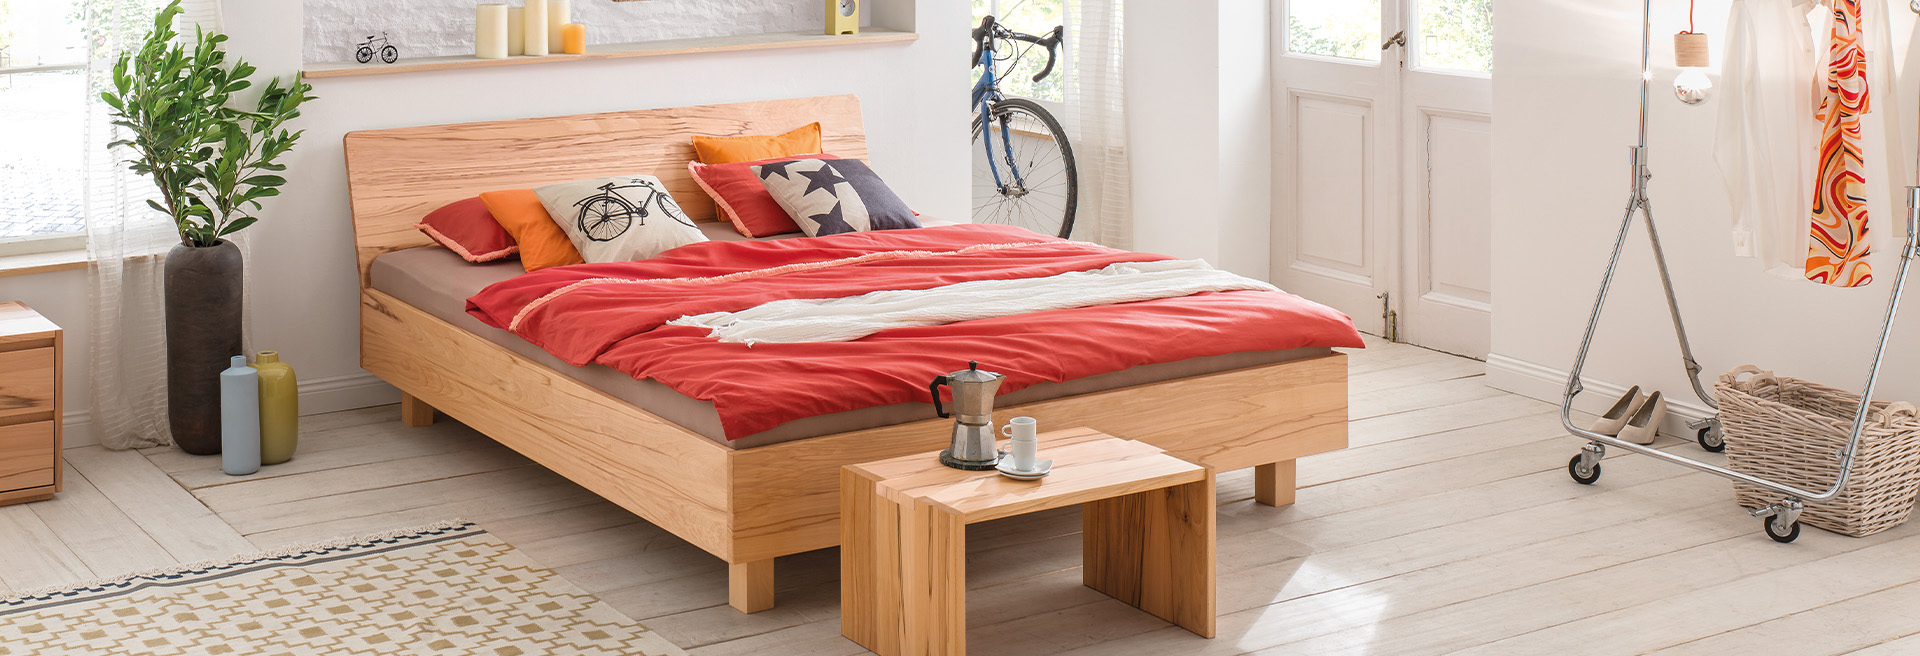 Solid wood bed in a youth room